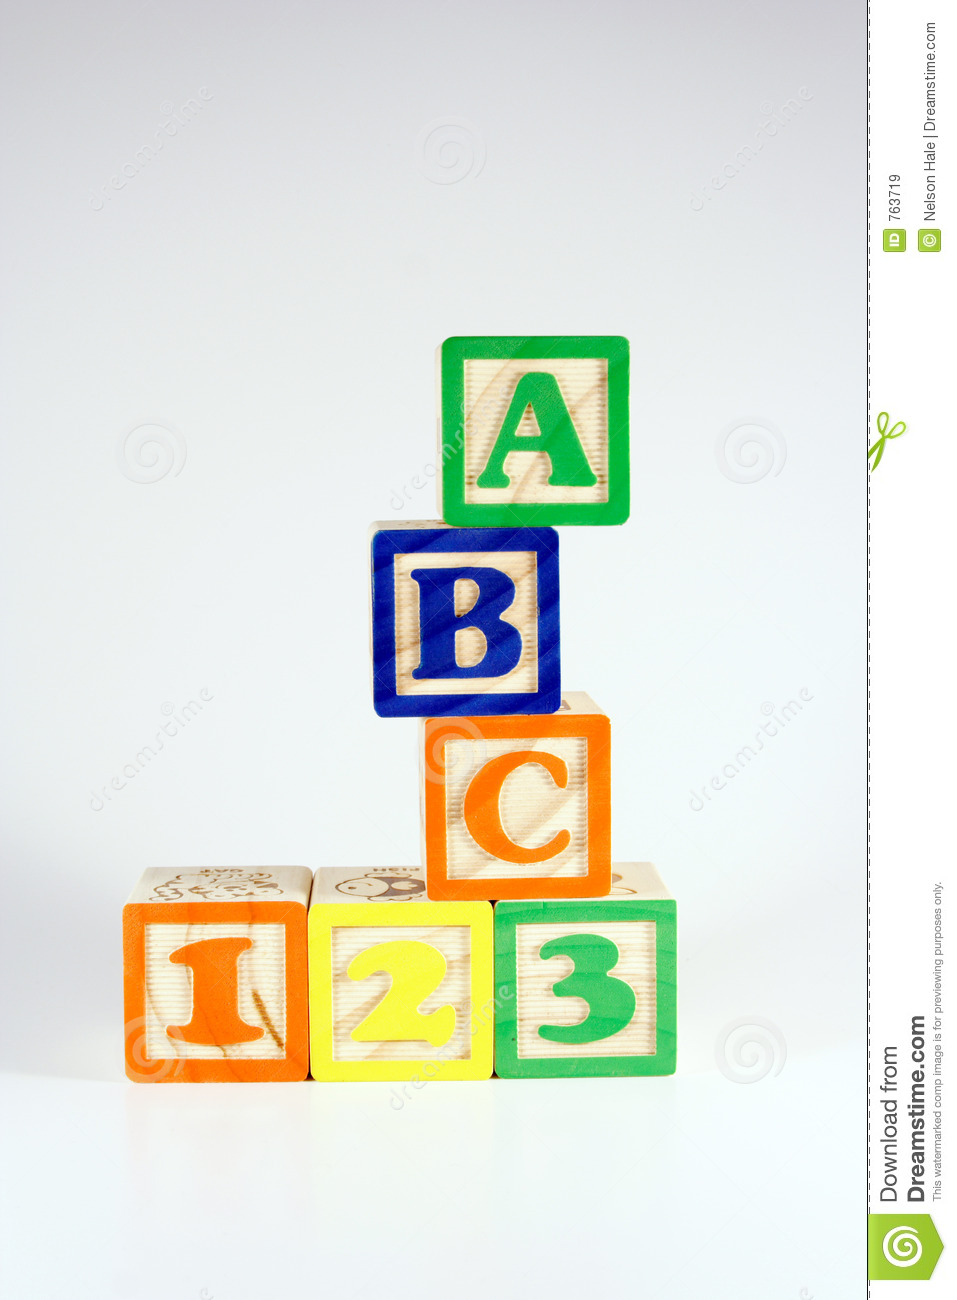 abc stock image image of isolated white hobbies  abc 123